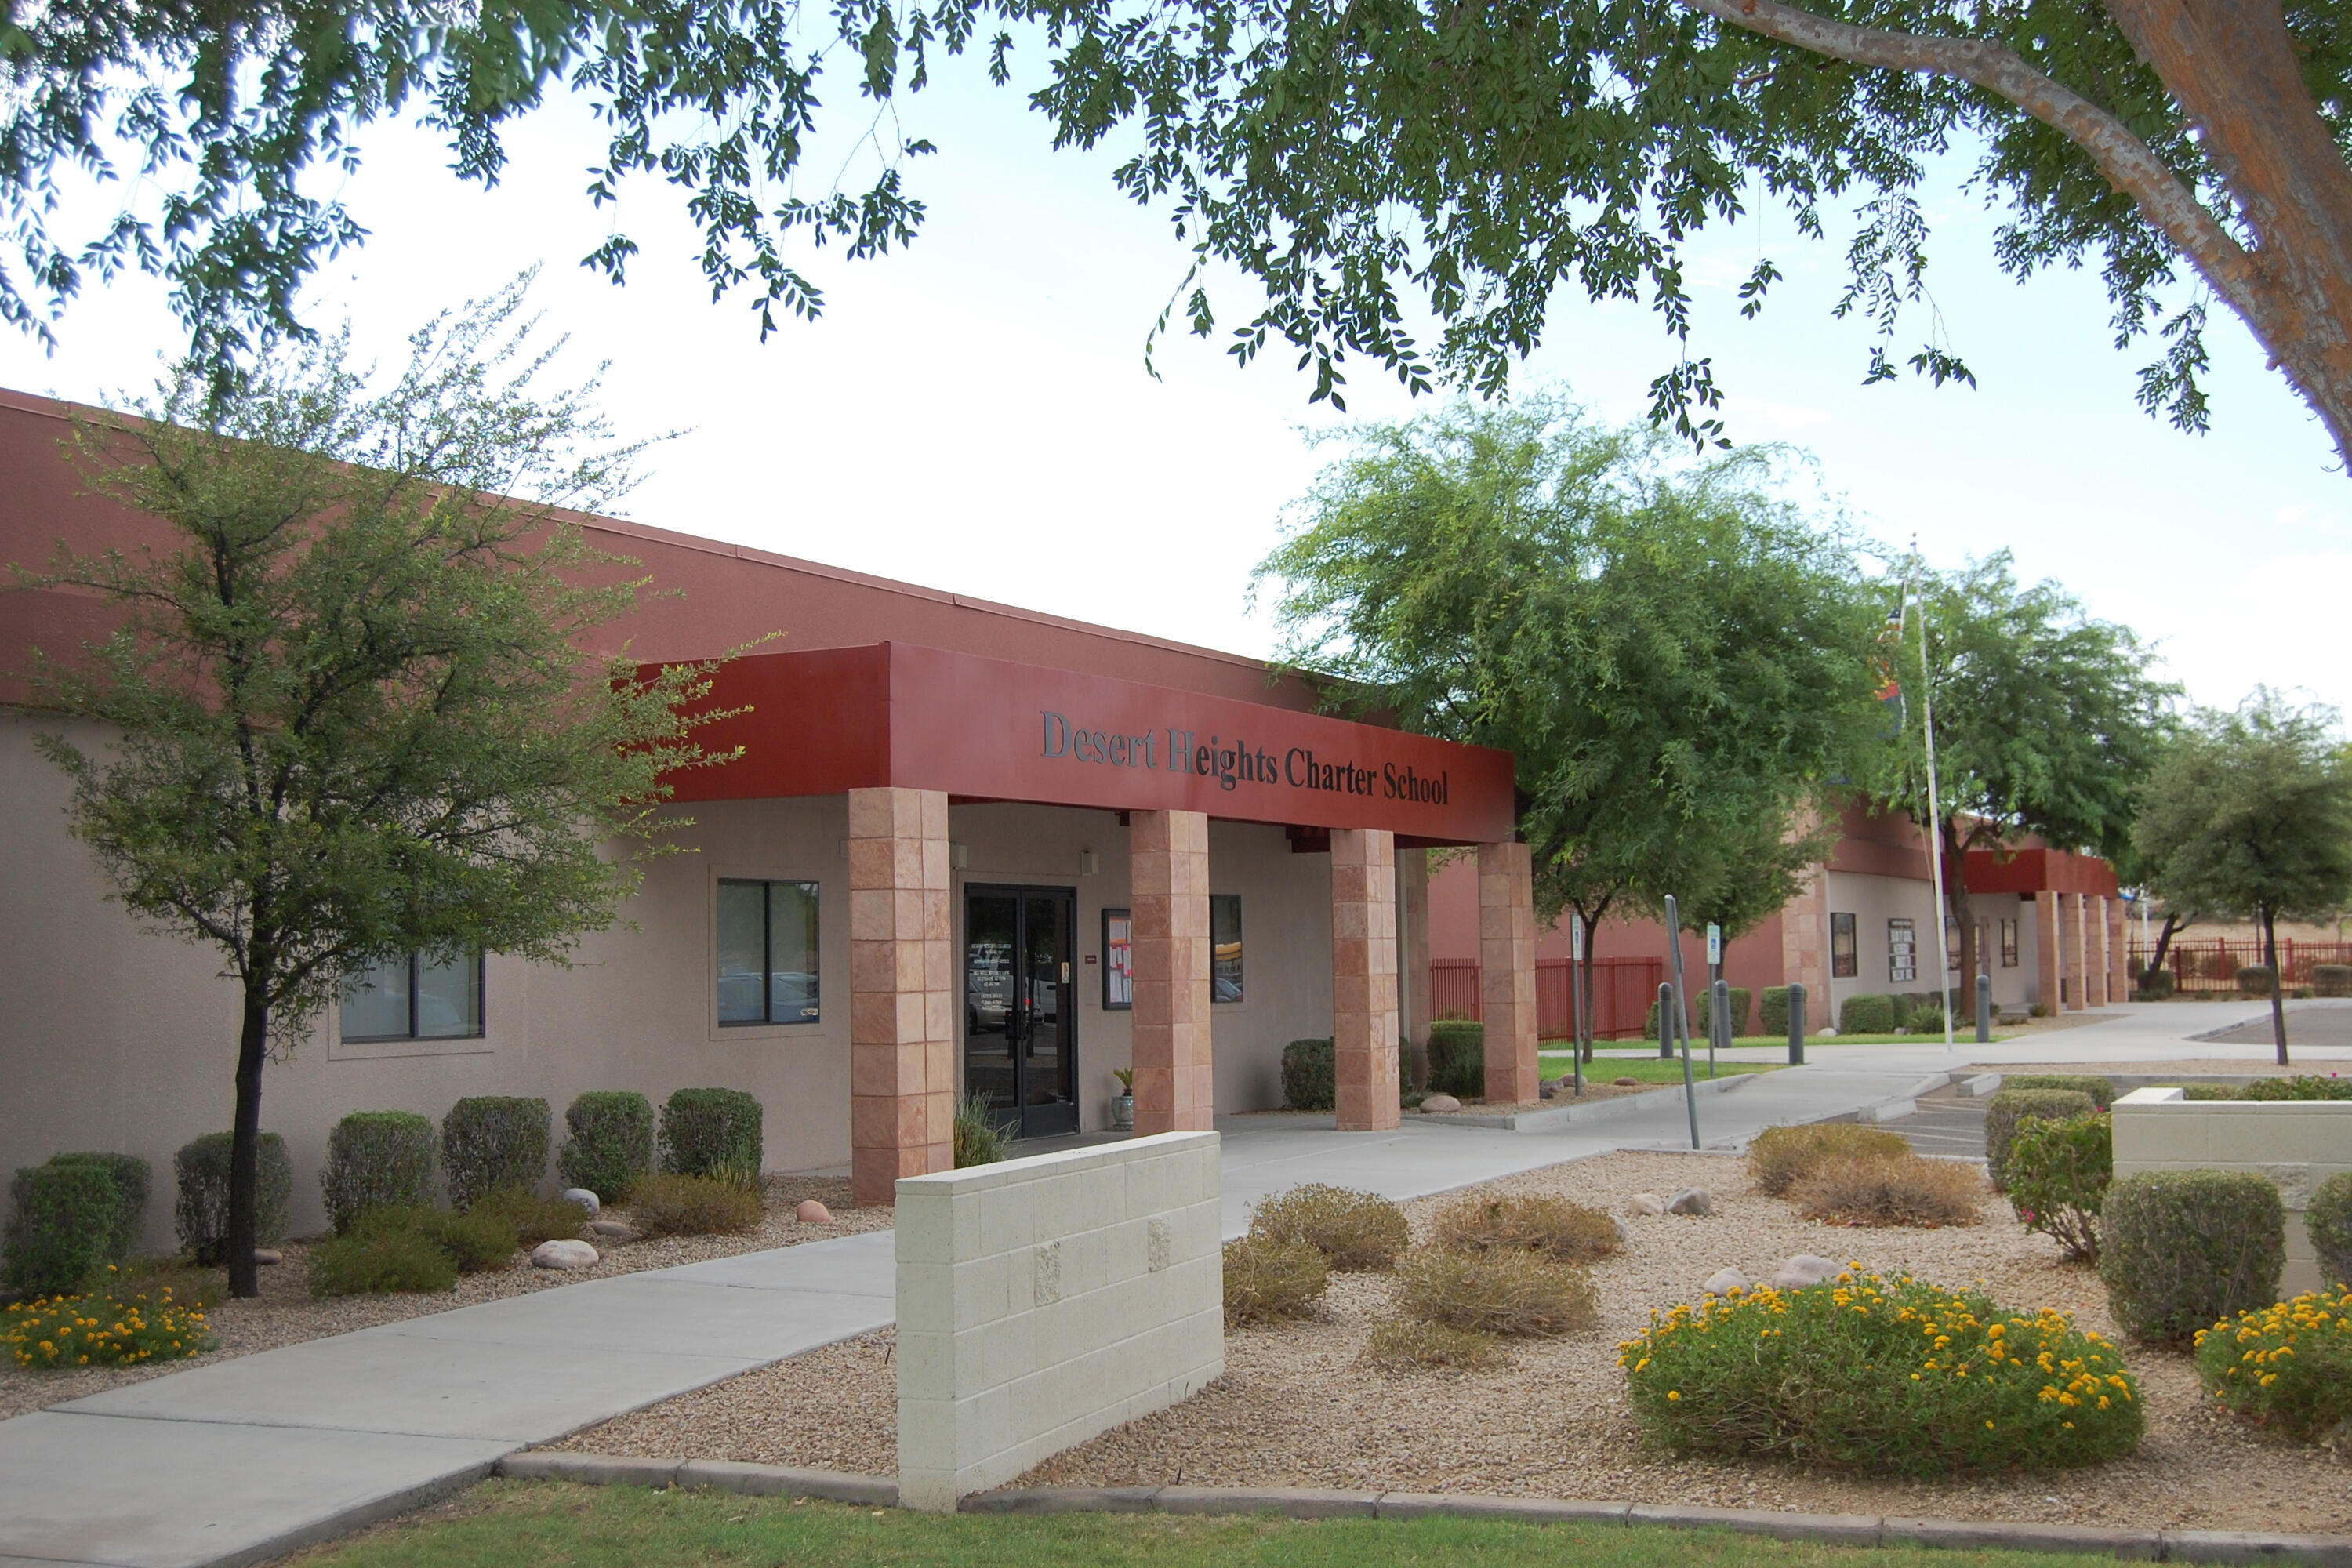 Front view of building at Desert Heights Charter School